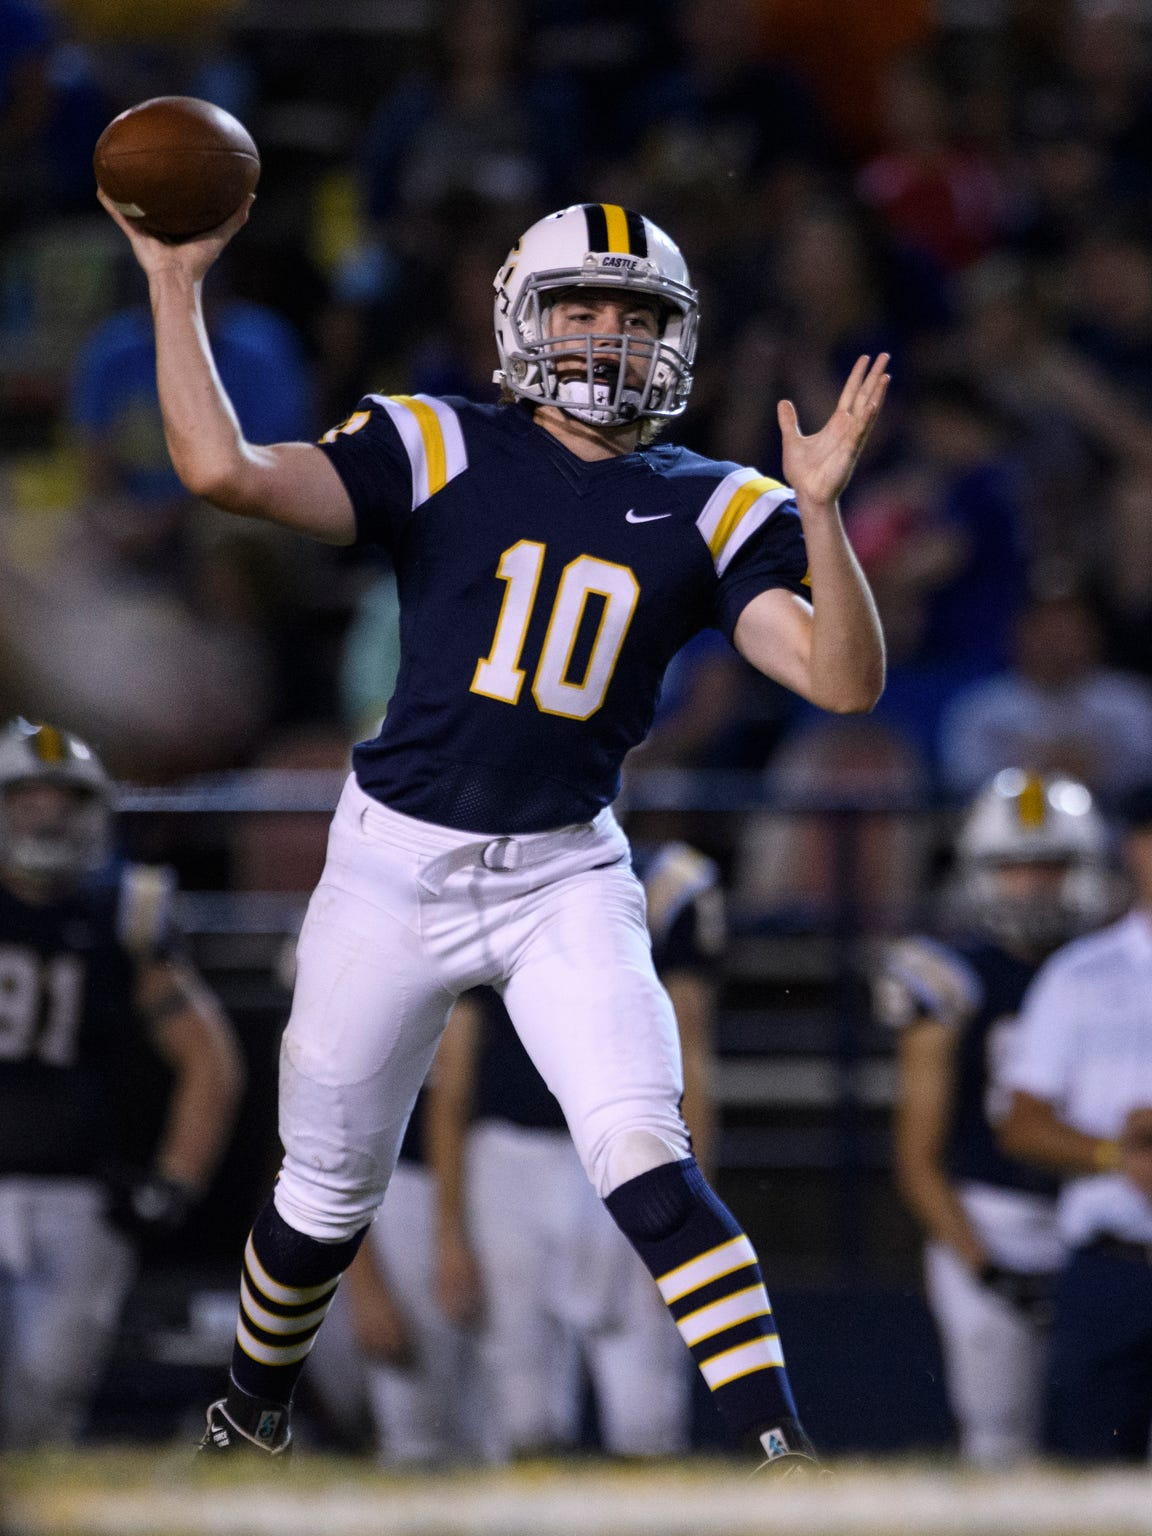 Cameron Justus (10) has a 3-0 record as Castle's starting quarterback entering the Knights' regular season finale against Memorial Friday at Enlow Field.